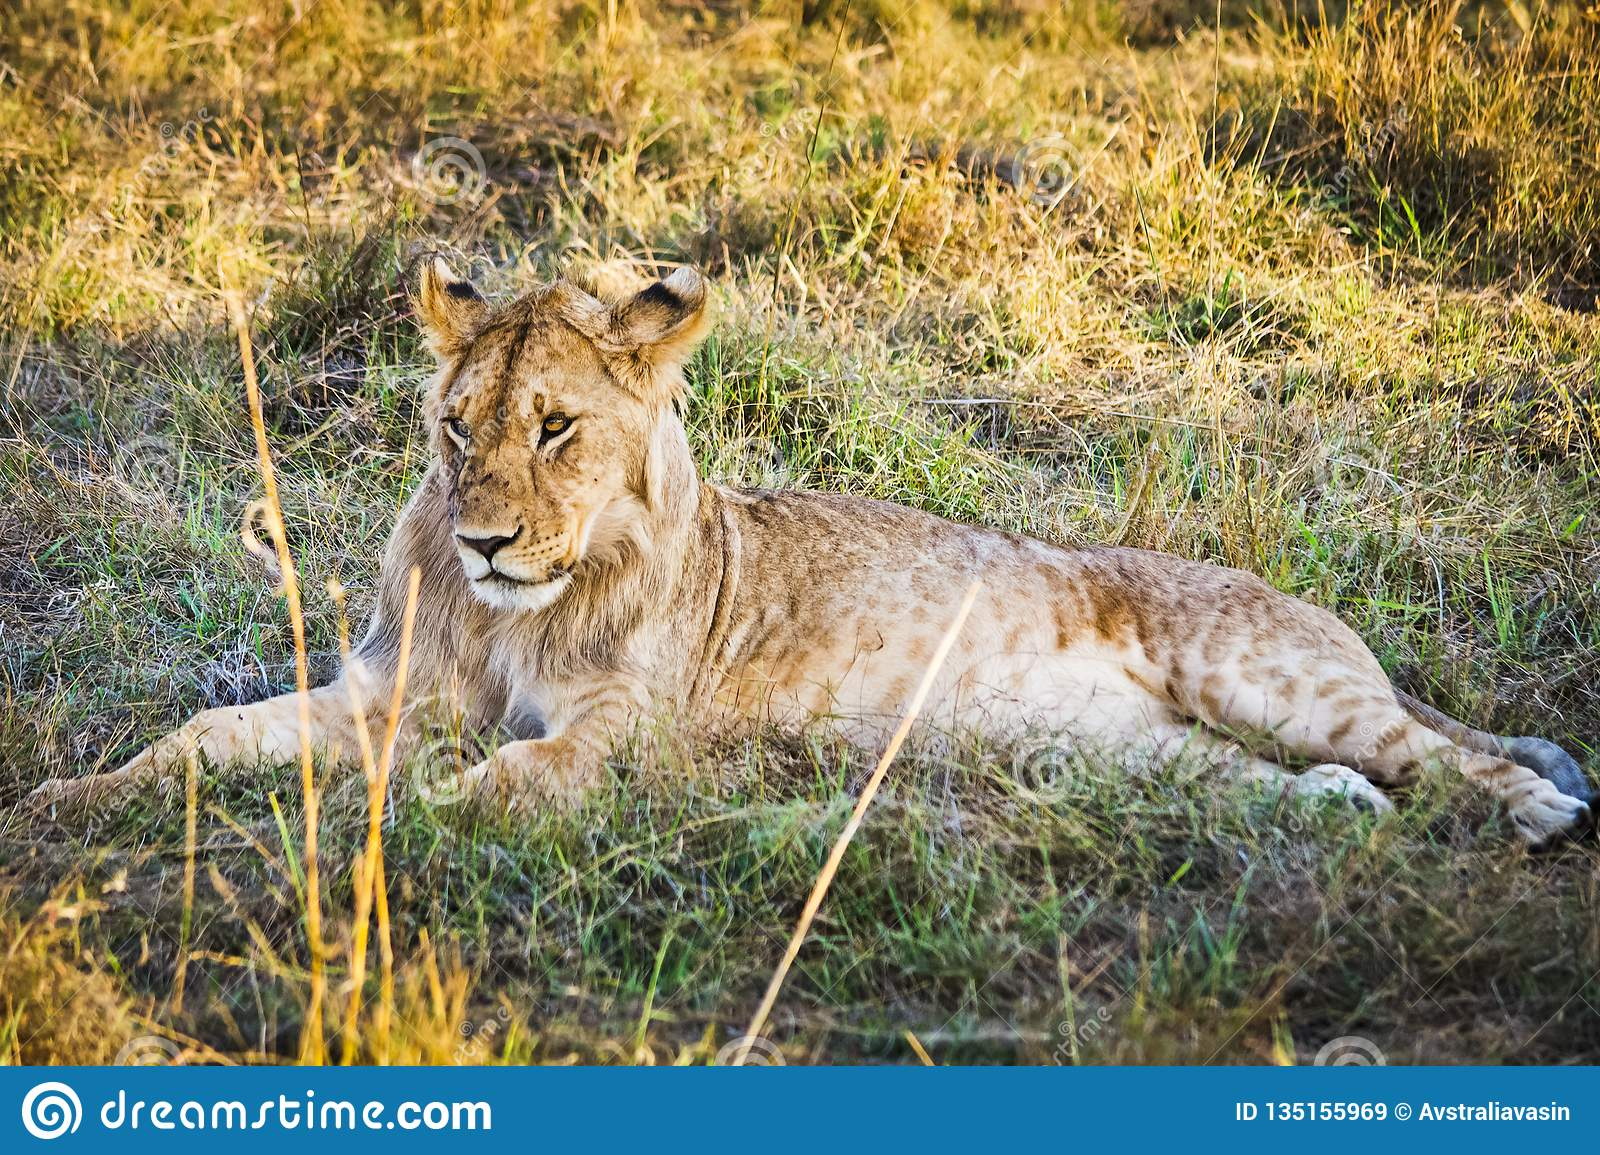 Lion in the wild in the African . Lion - predator felines